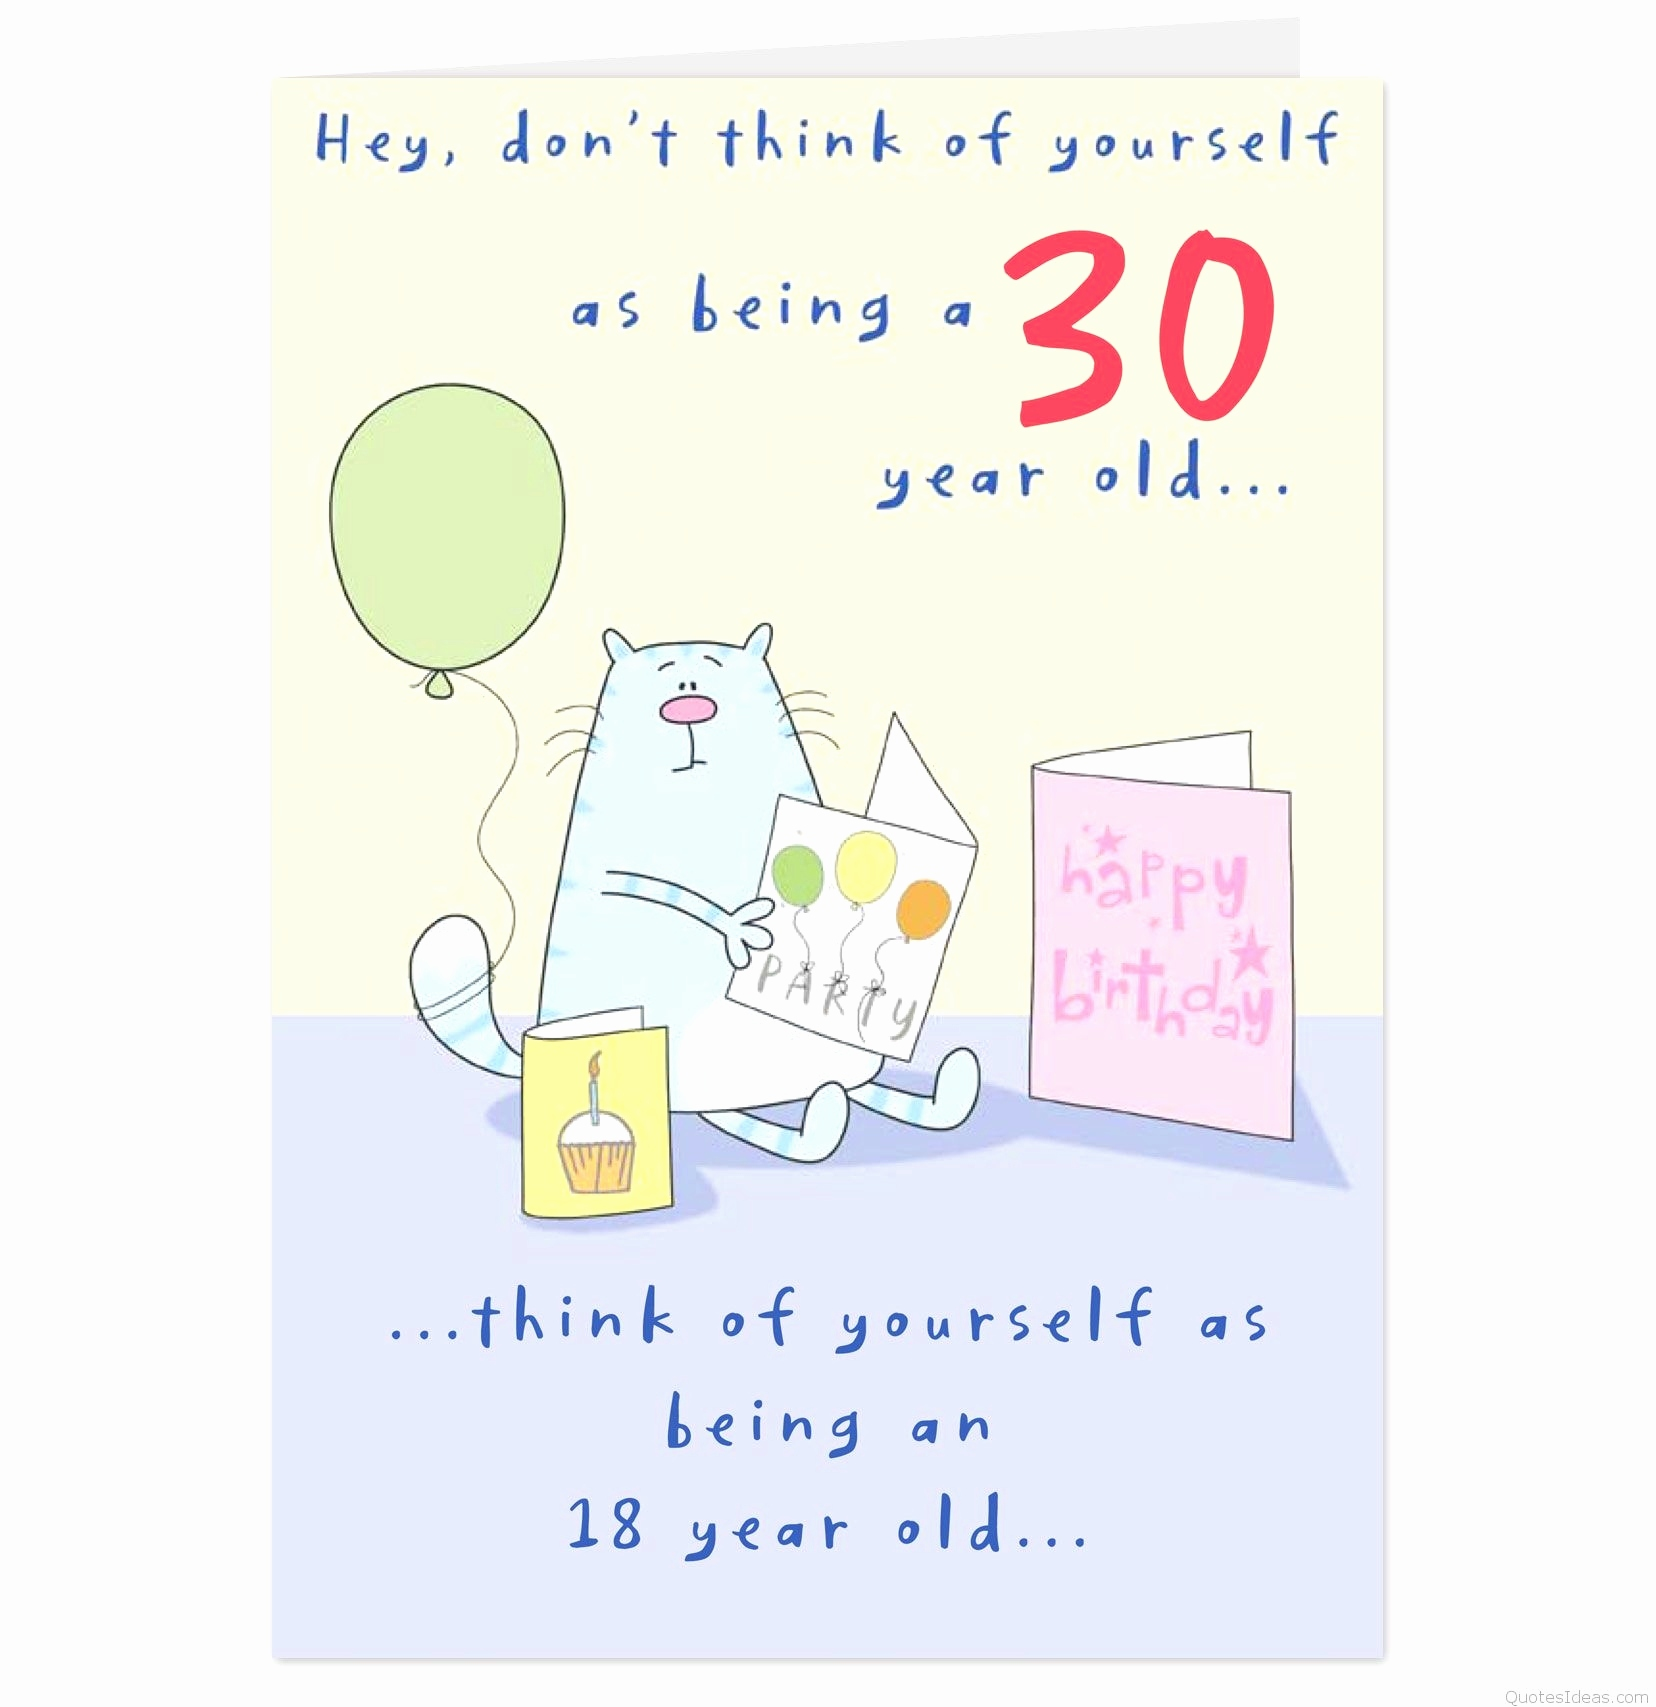 birthday card message for husband funny ; 50th-birthday-card-messages-new-husband-birthday-card-message-fresh-50th-birthday-wishes-messages-of-50th-birthday-card-messages